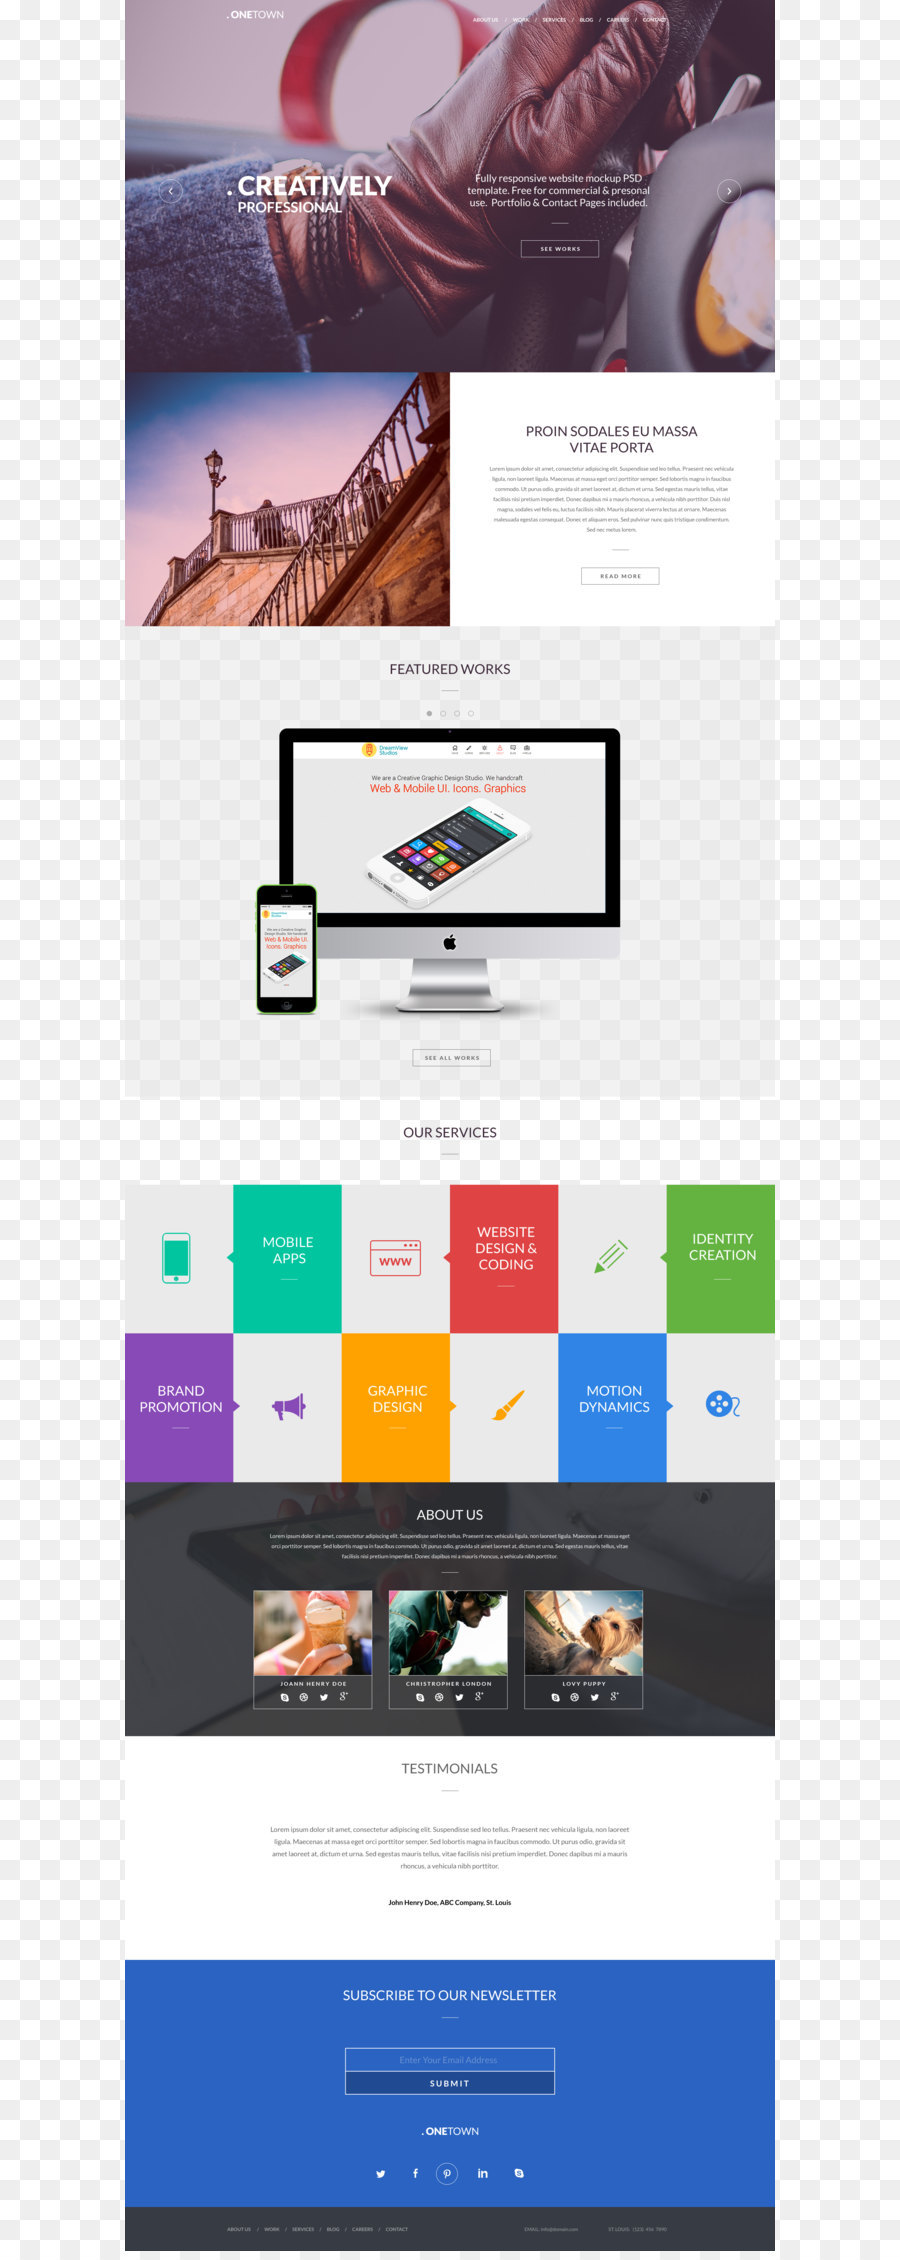 Responsive Web Design Web Page Web Template System Website - Complete website templates free download